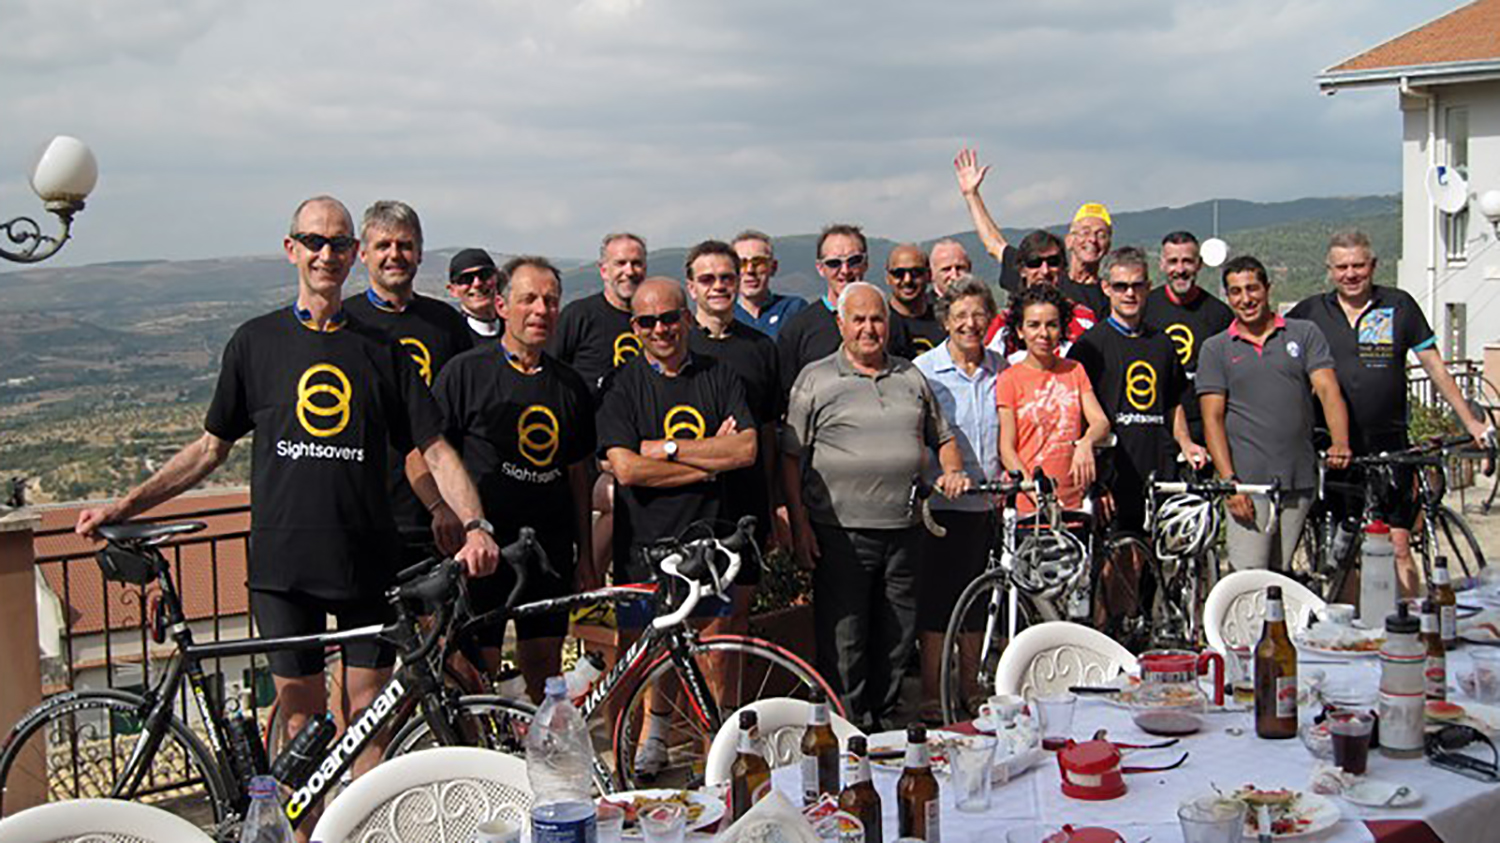 Members of the Jolly Wheelers cycle group wearing Sightsavers t-shirts, standing with their bicycles outside a restaurant high on a hill in Italy.